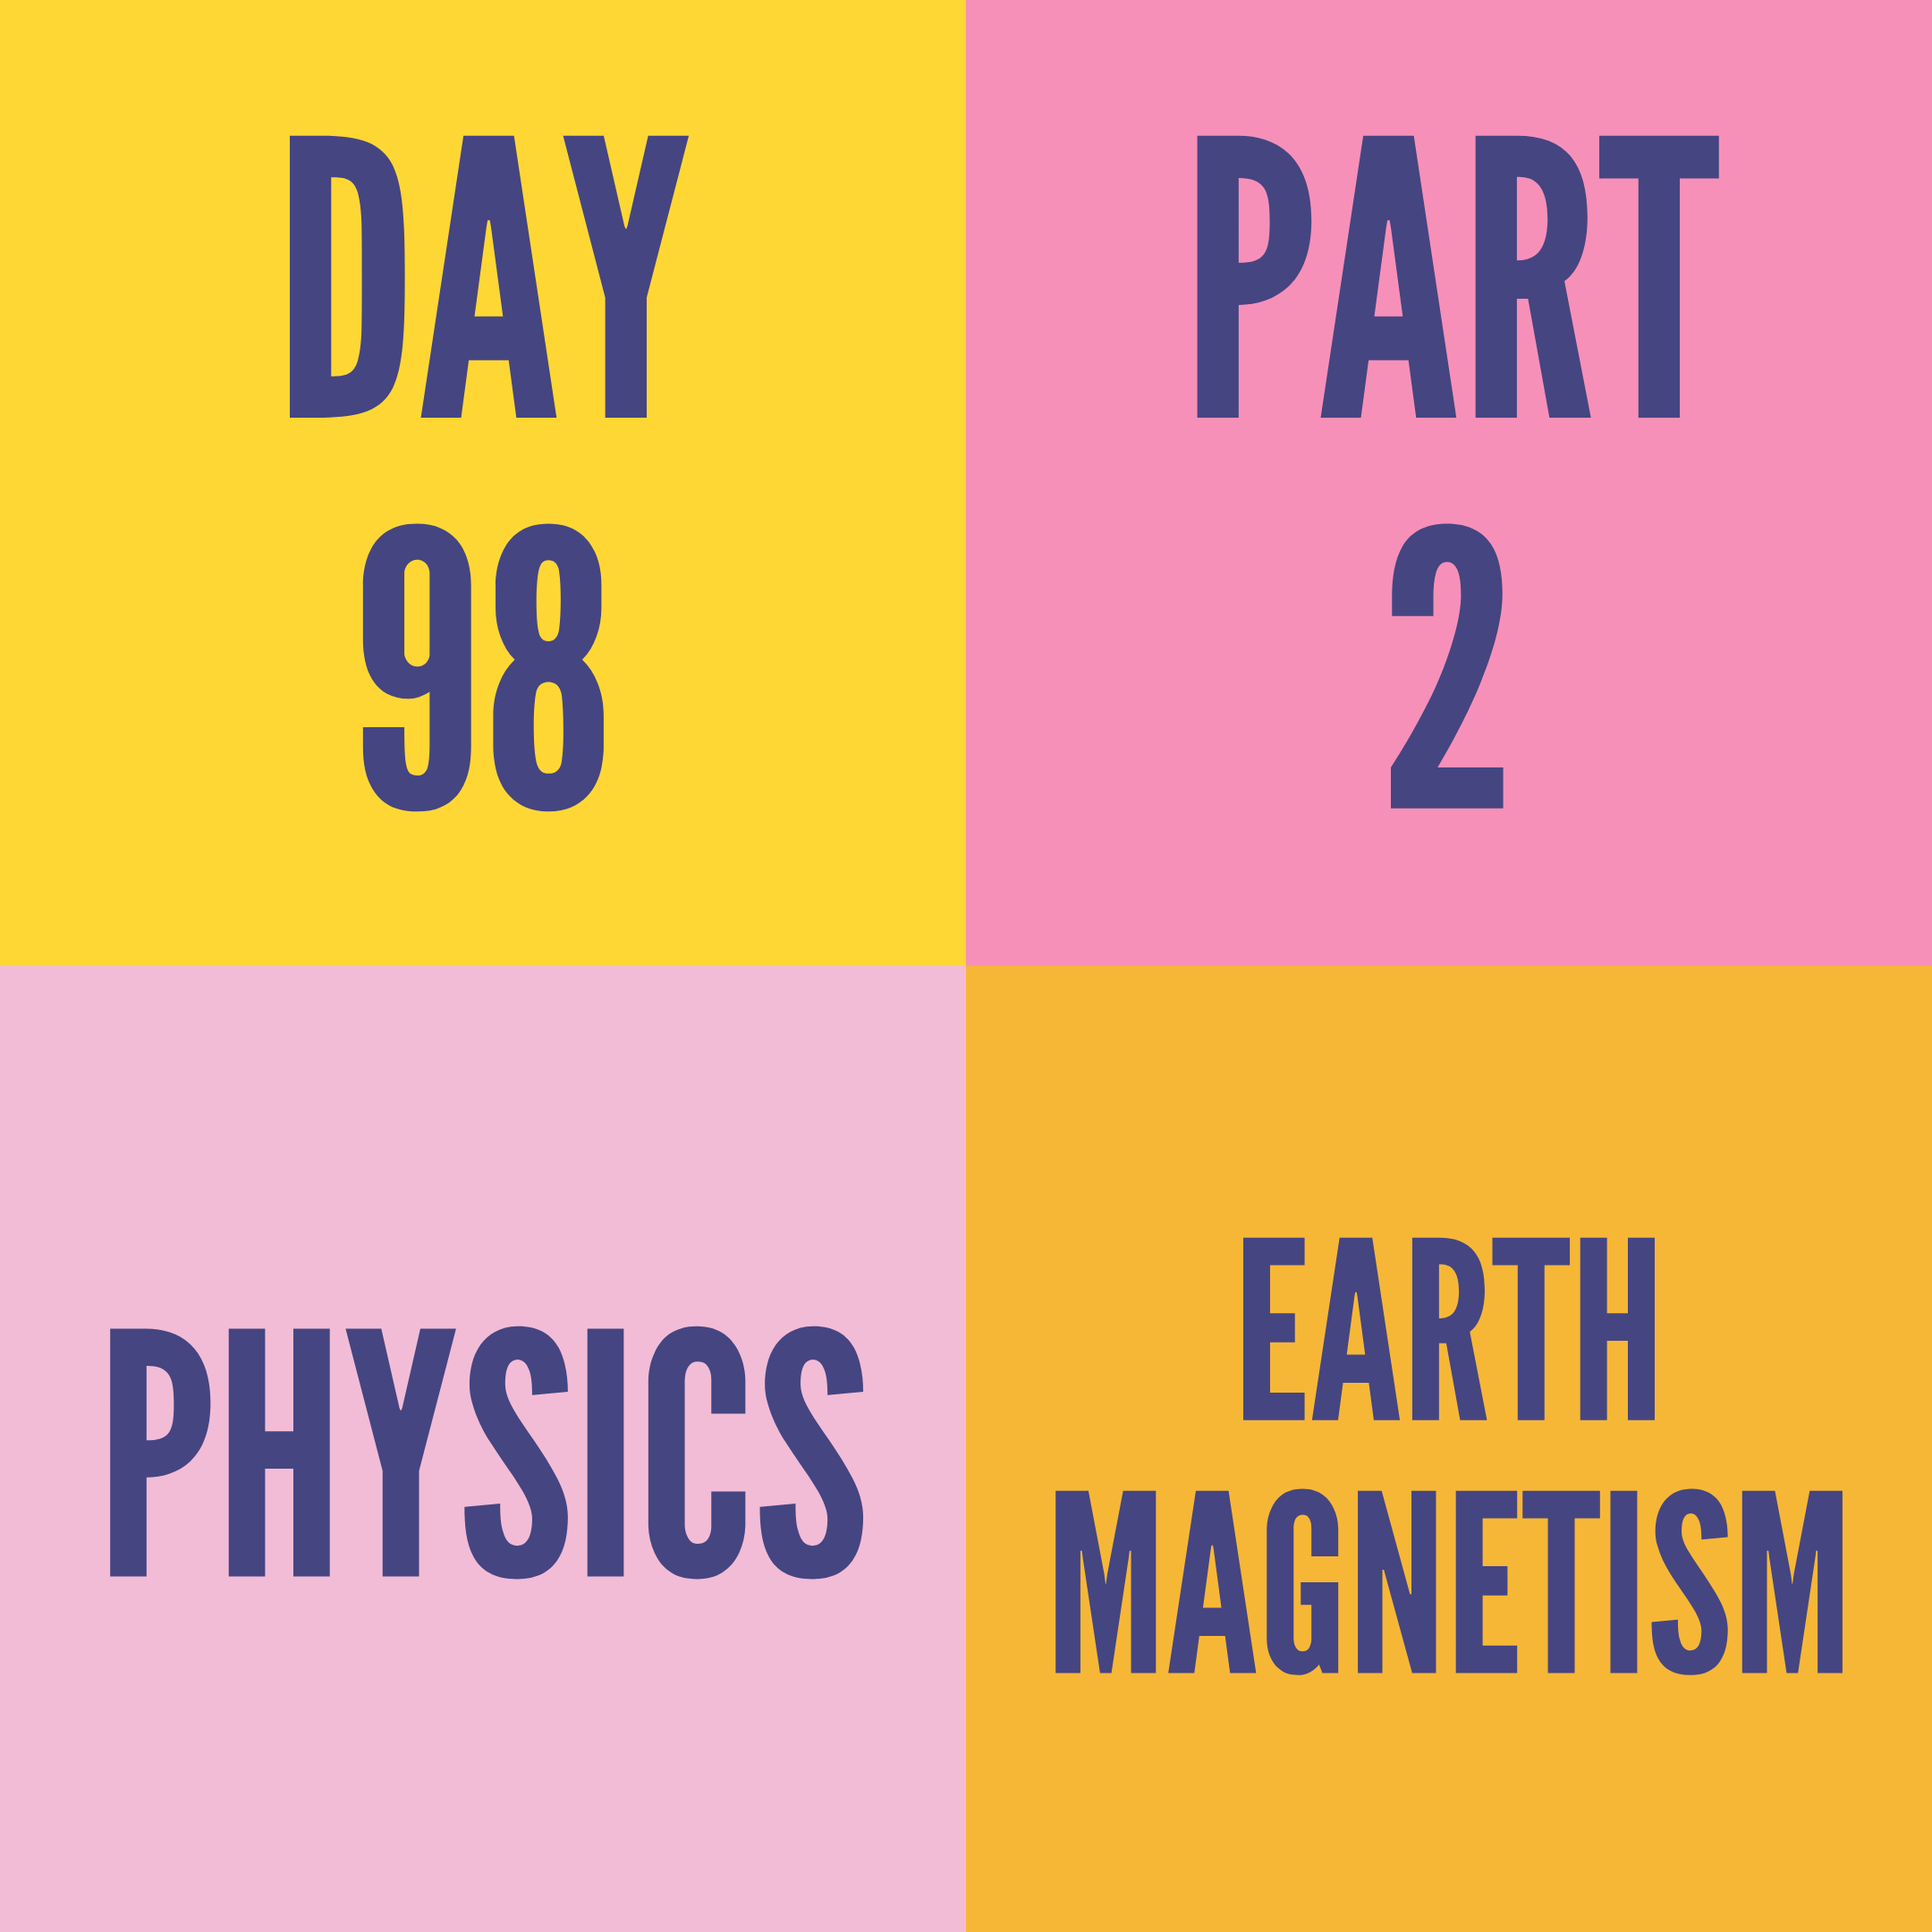 DAY-98 PART-2 EARTH MAGNETISM